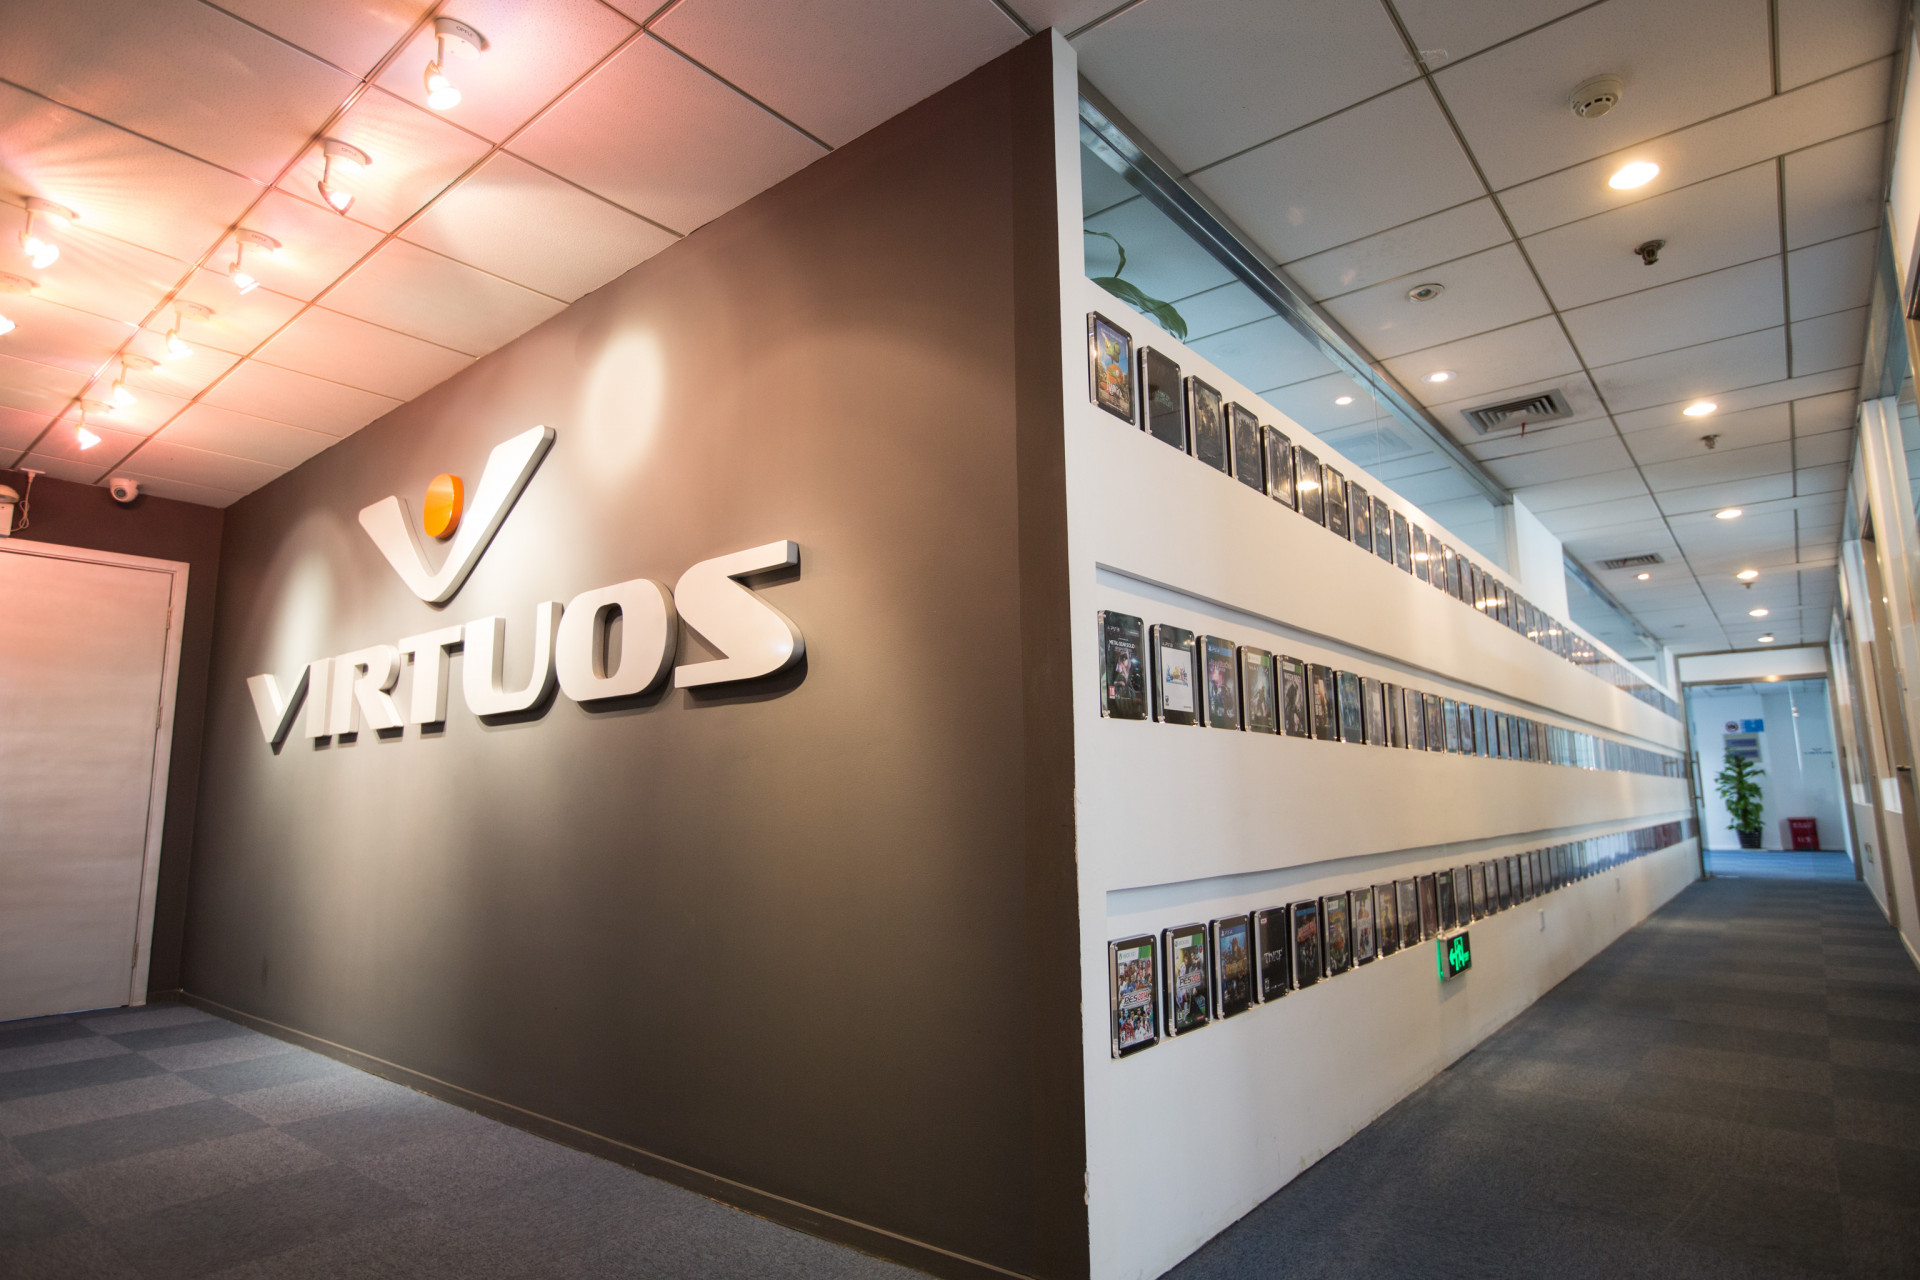 Game titles that Virtuos has worked on being framed on its office wall. (Image credit: Virtuos)